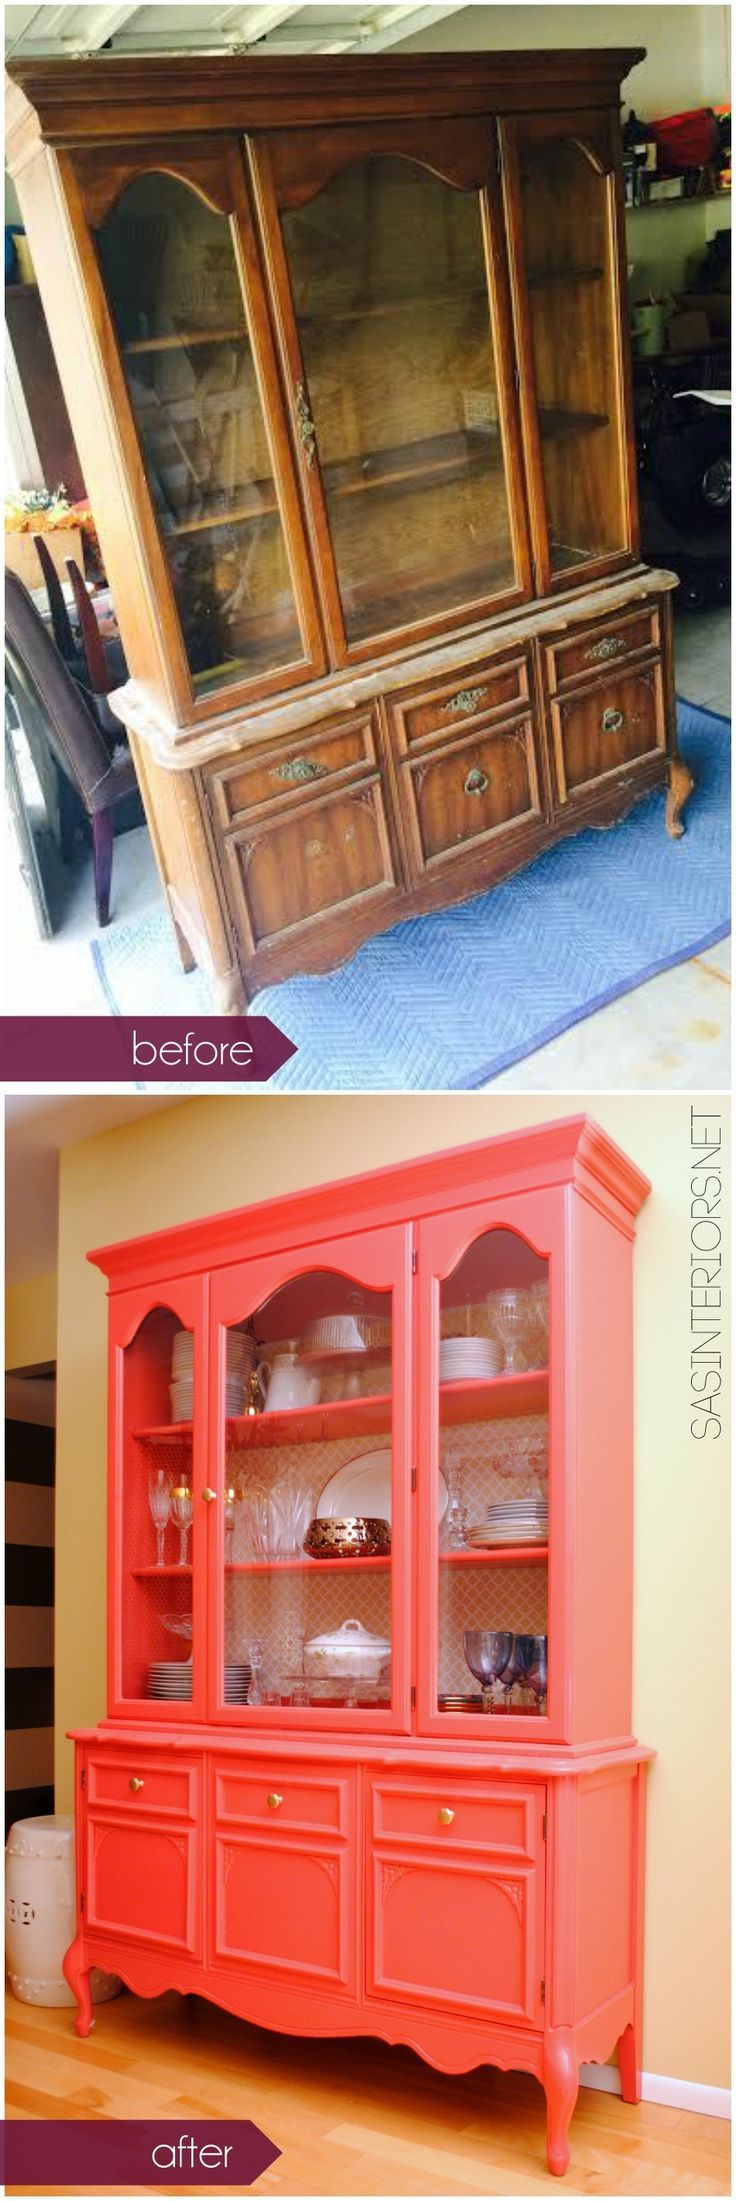 China Cabinet before & after >>> The process of giving this piece of a furniture a complete makeover!: